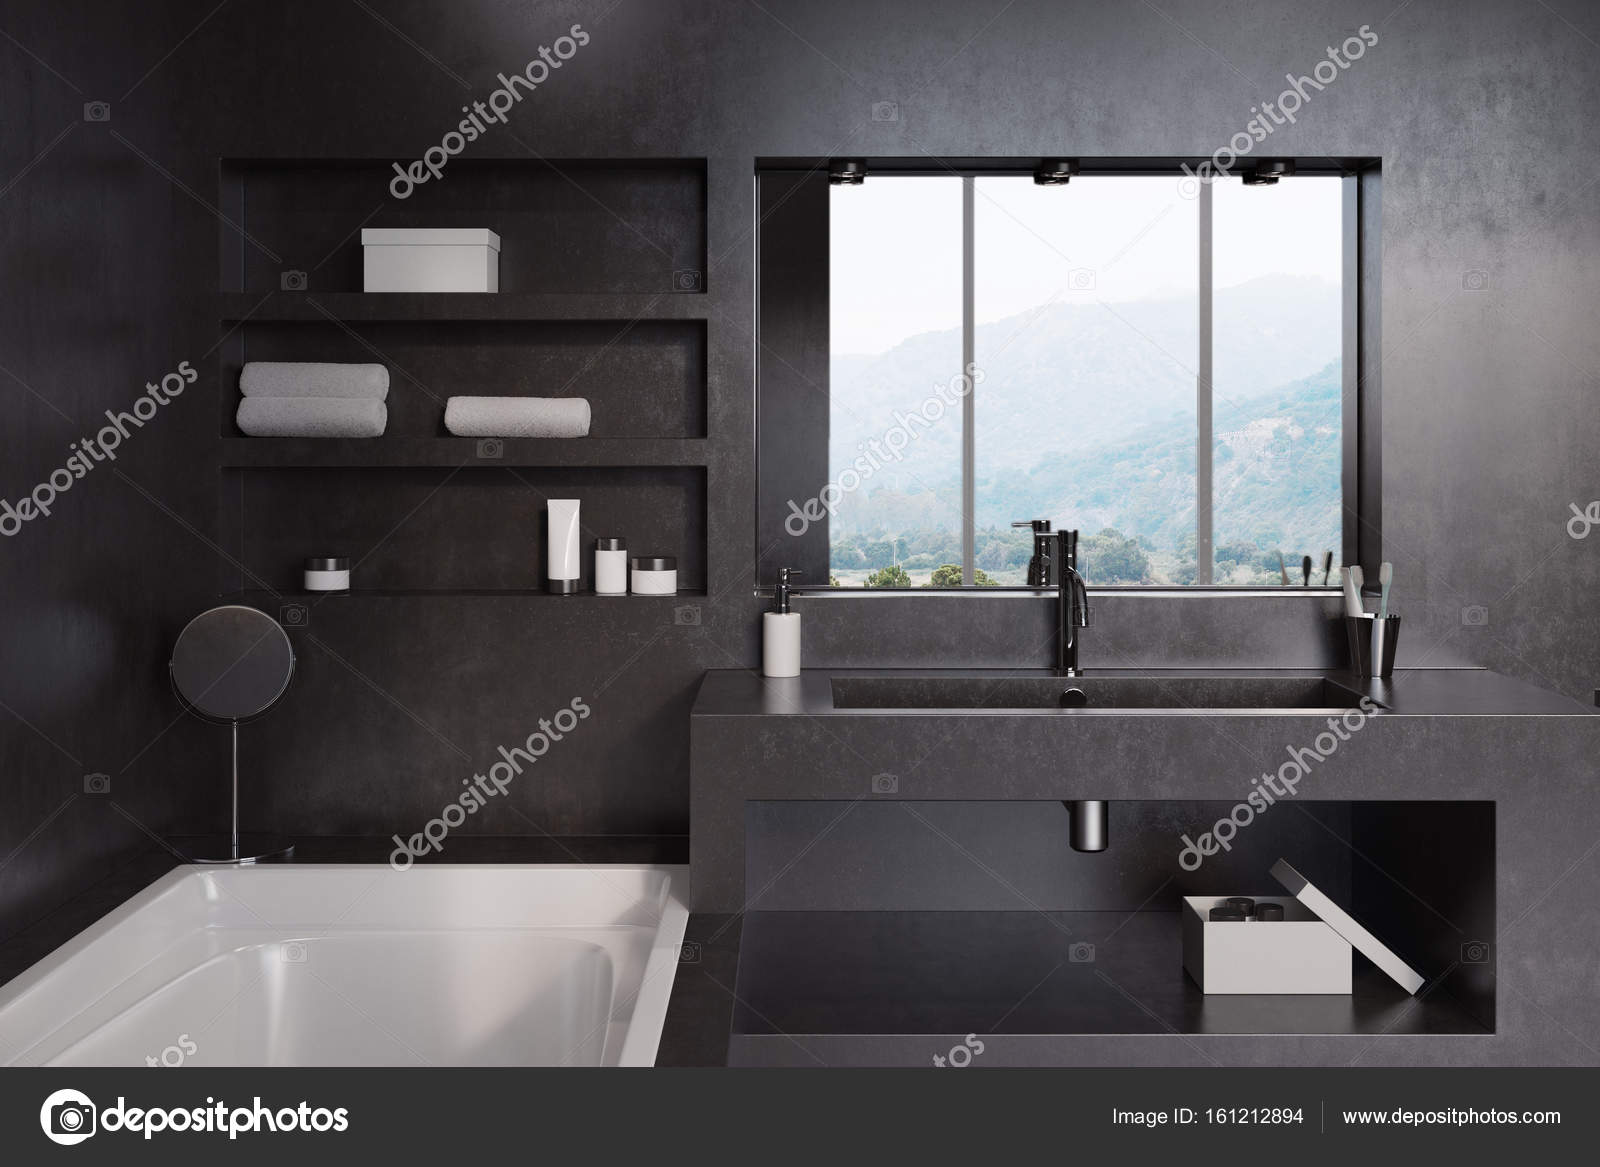 Zwarte badkamer, bad, wastafel en spiegel close-up — Stockfoto ...